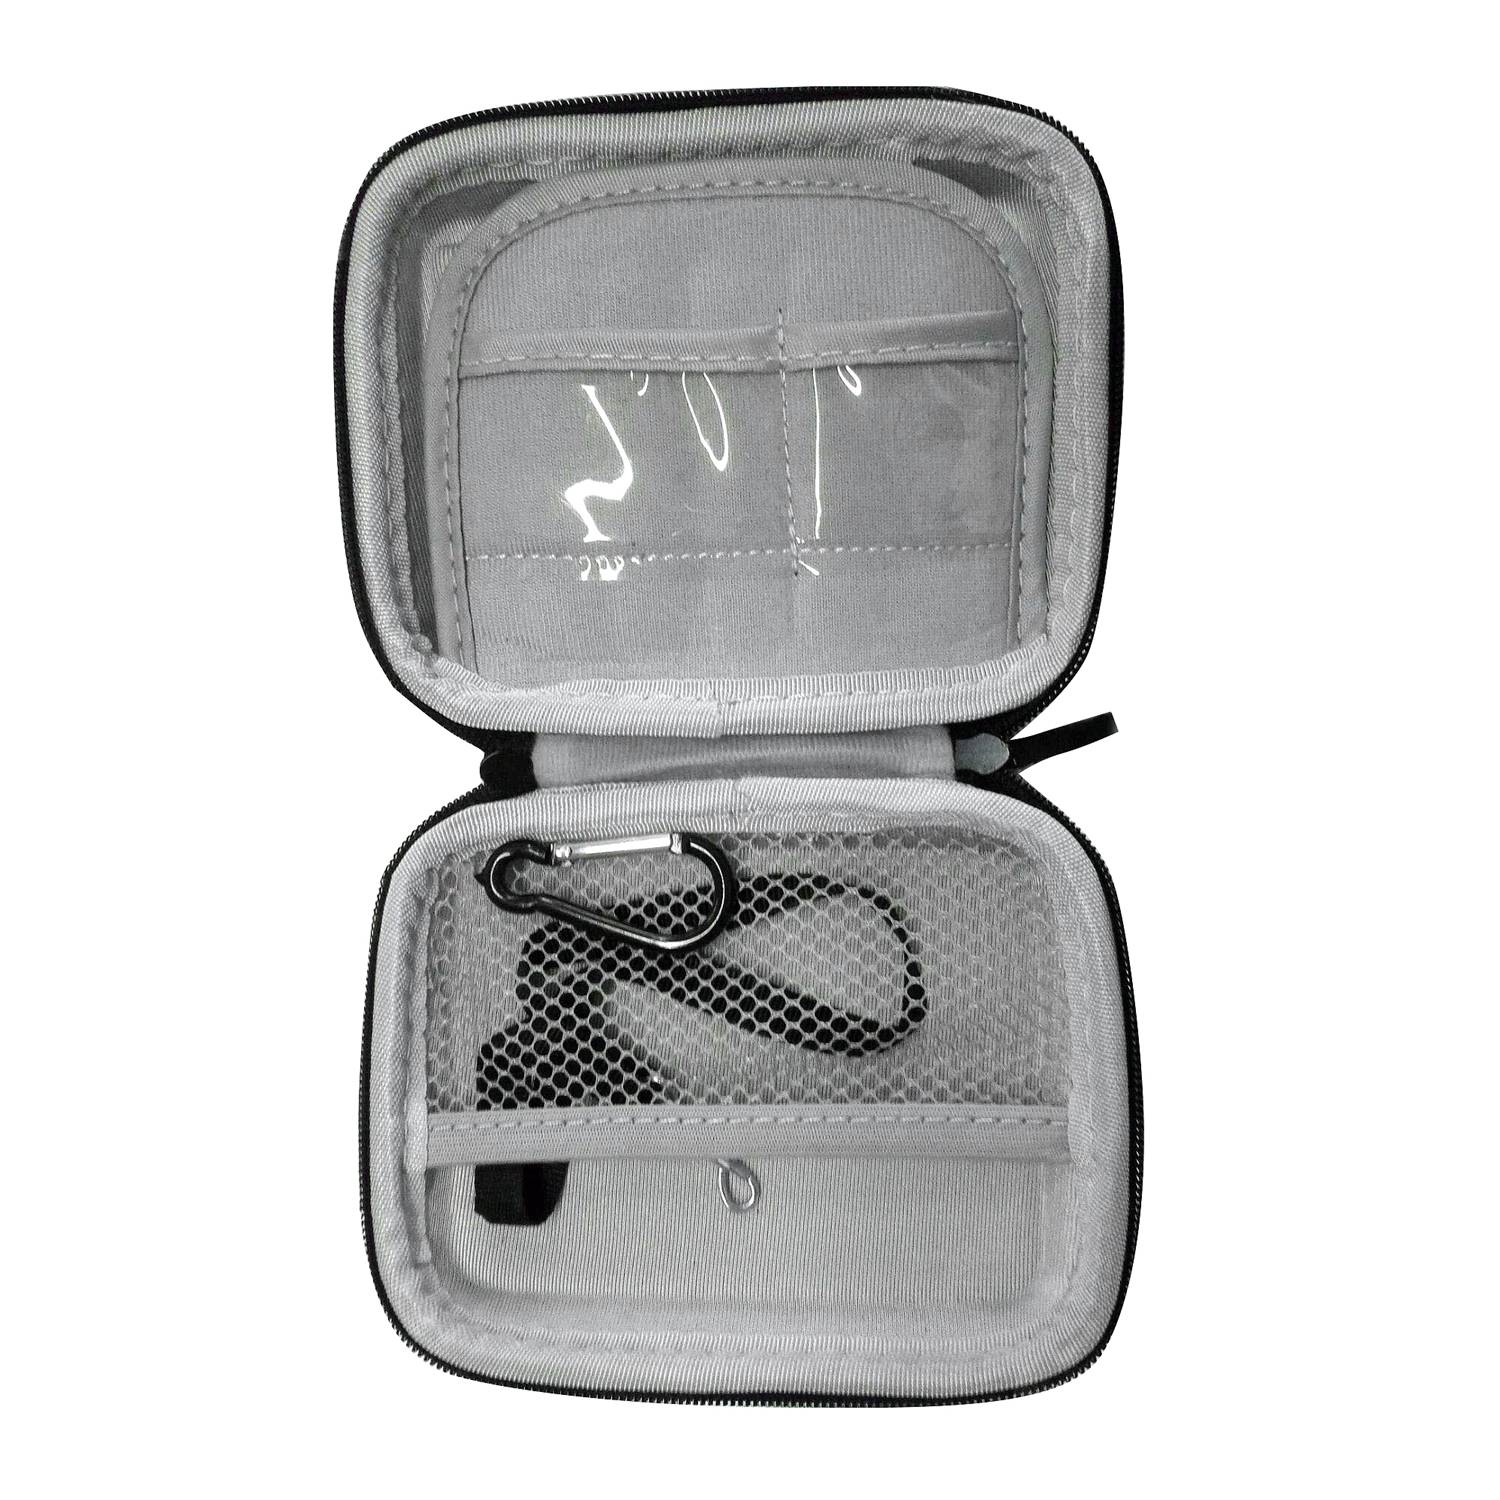 Portable Hard Carrying Case Pouch Bag For Seagate Expansion External Hard Drive